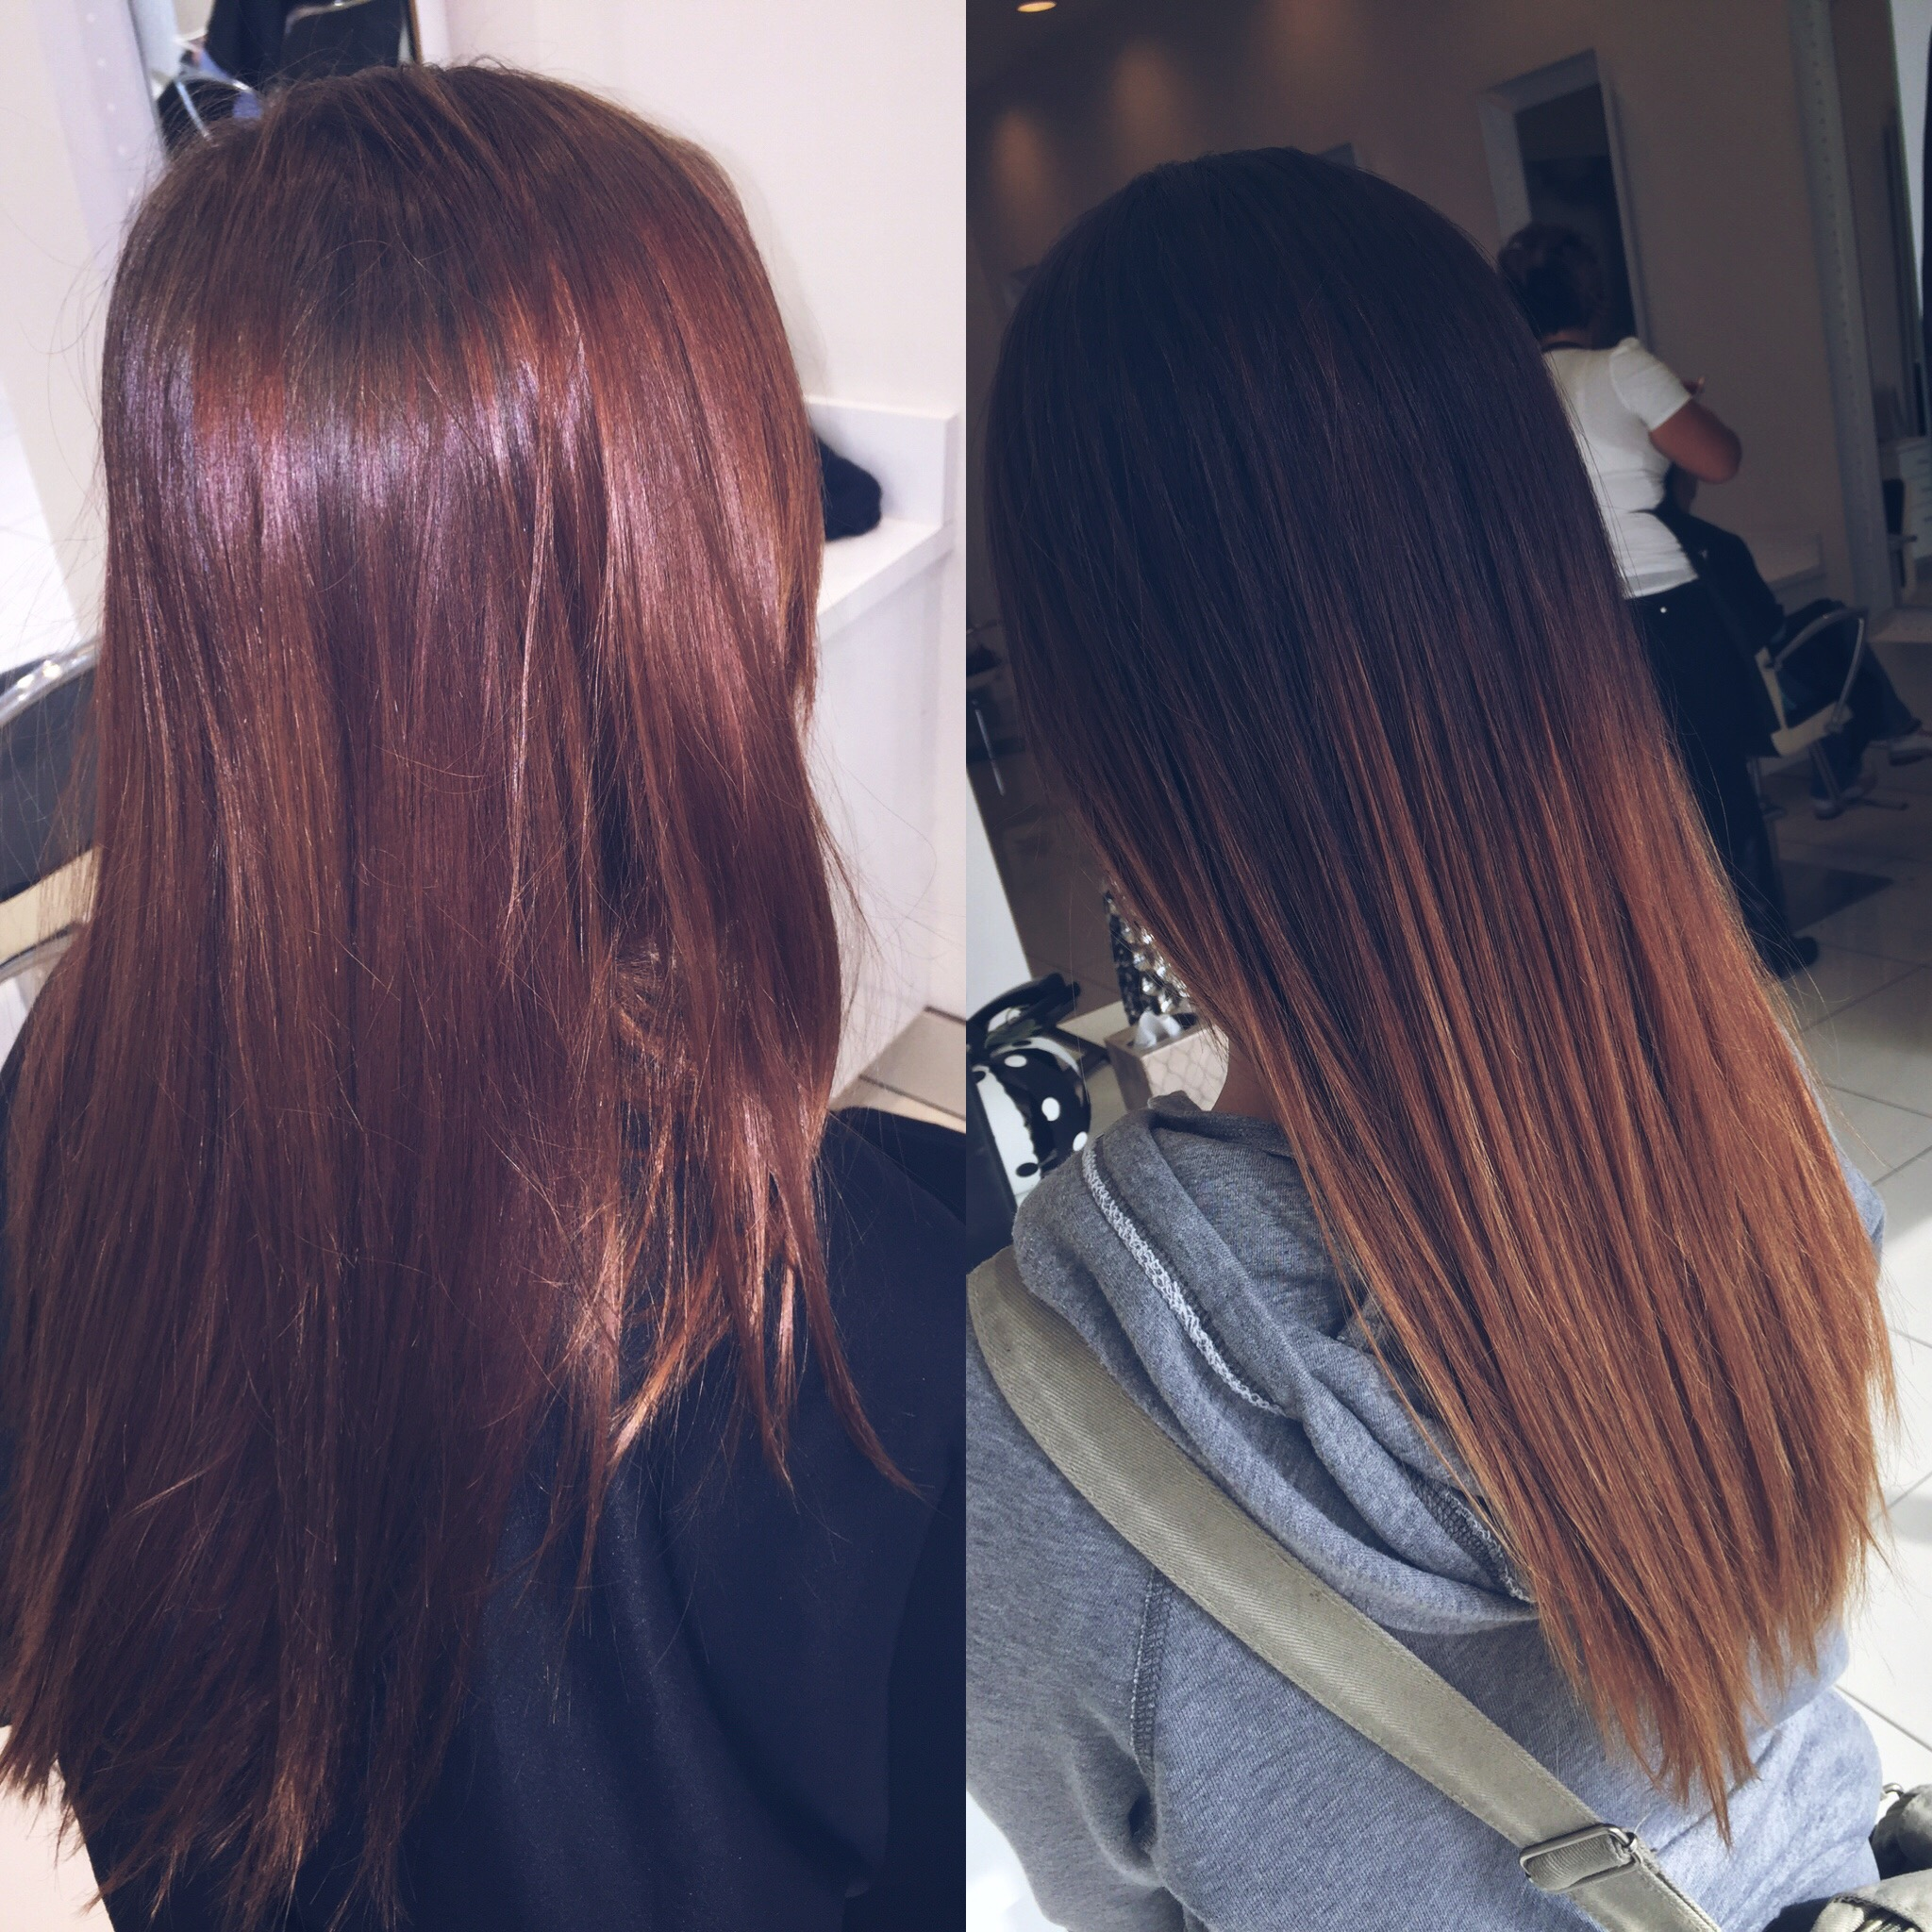 Before and after. Ombré technique